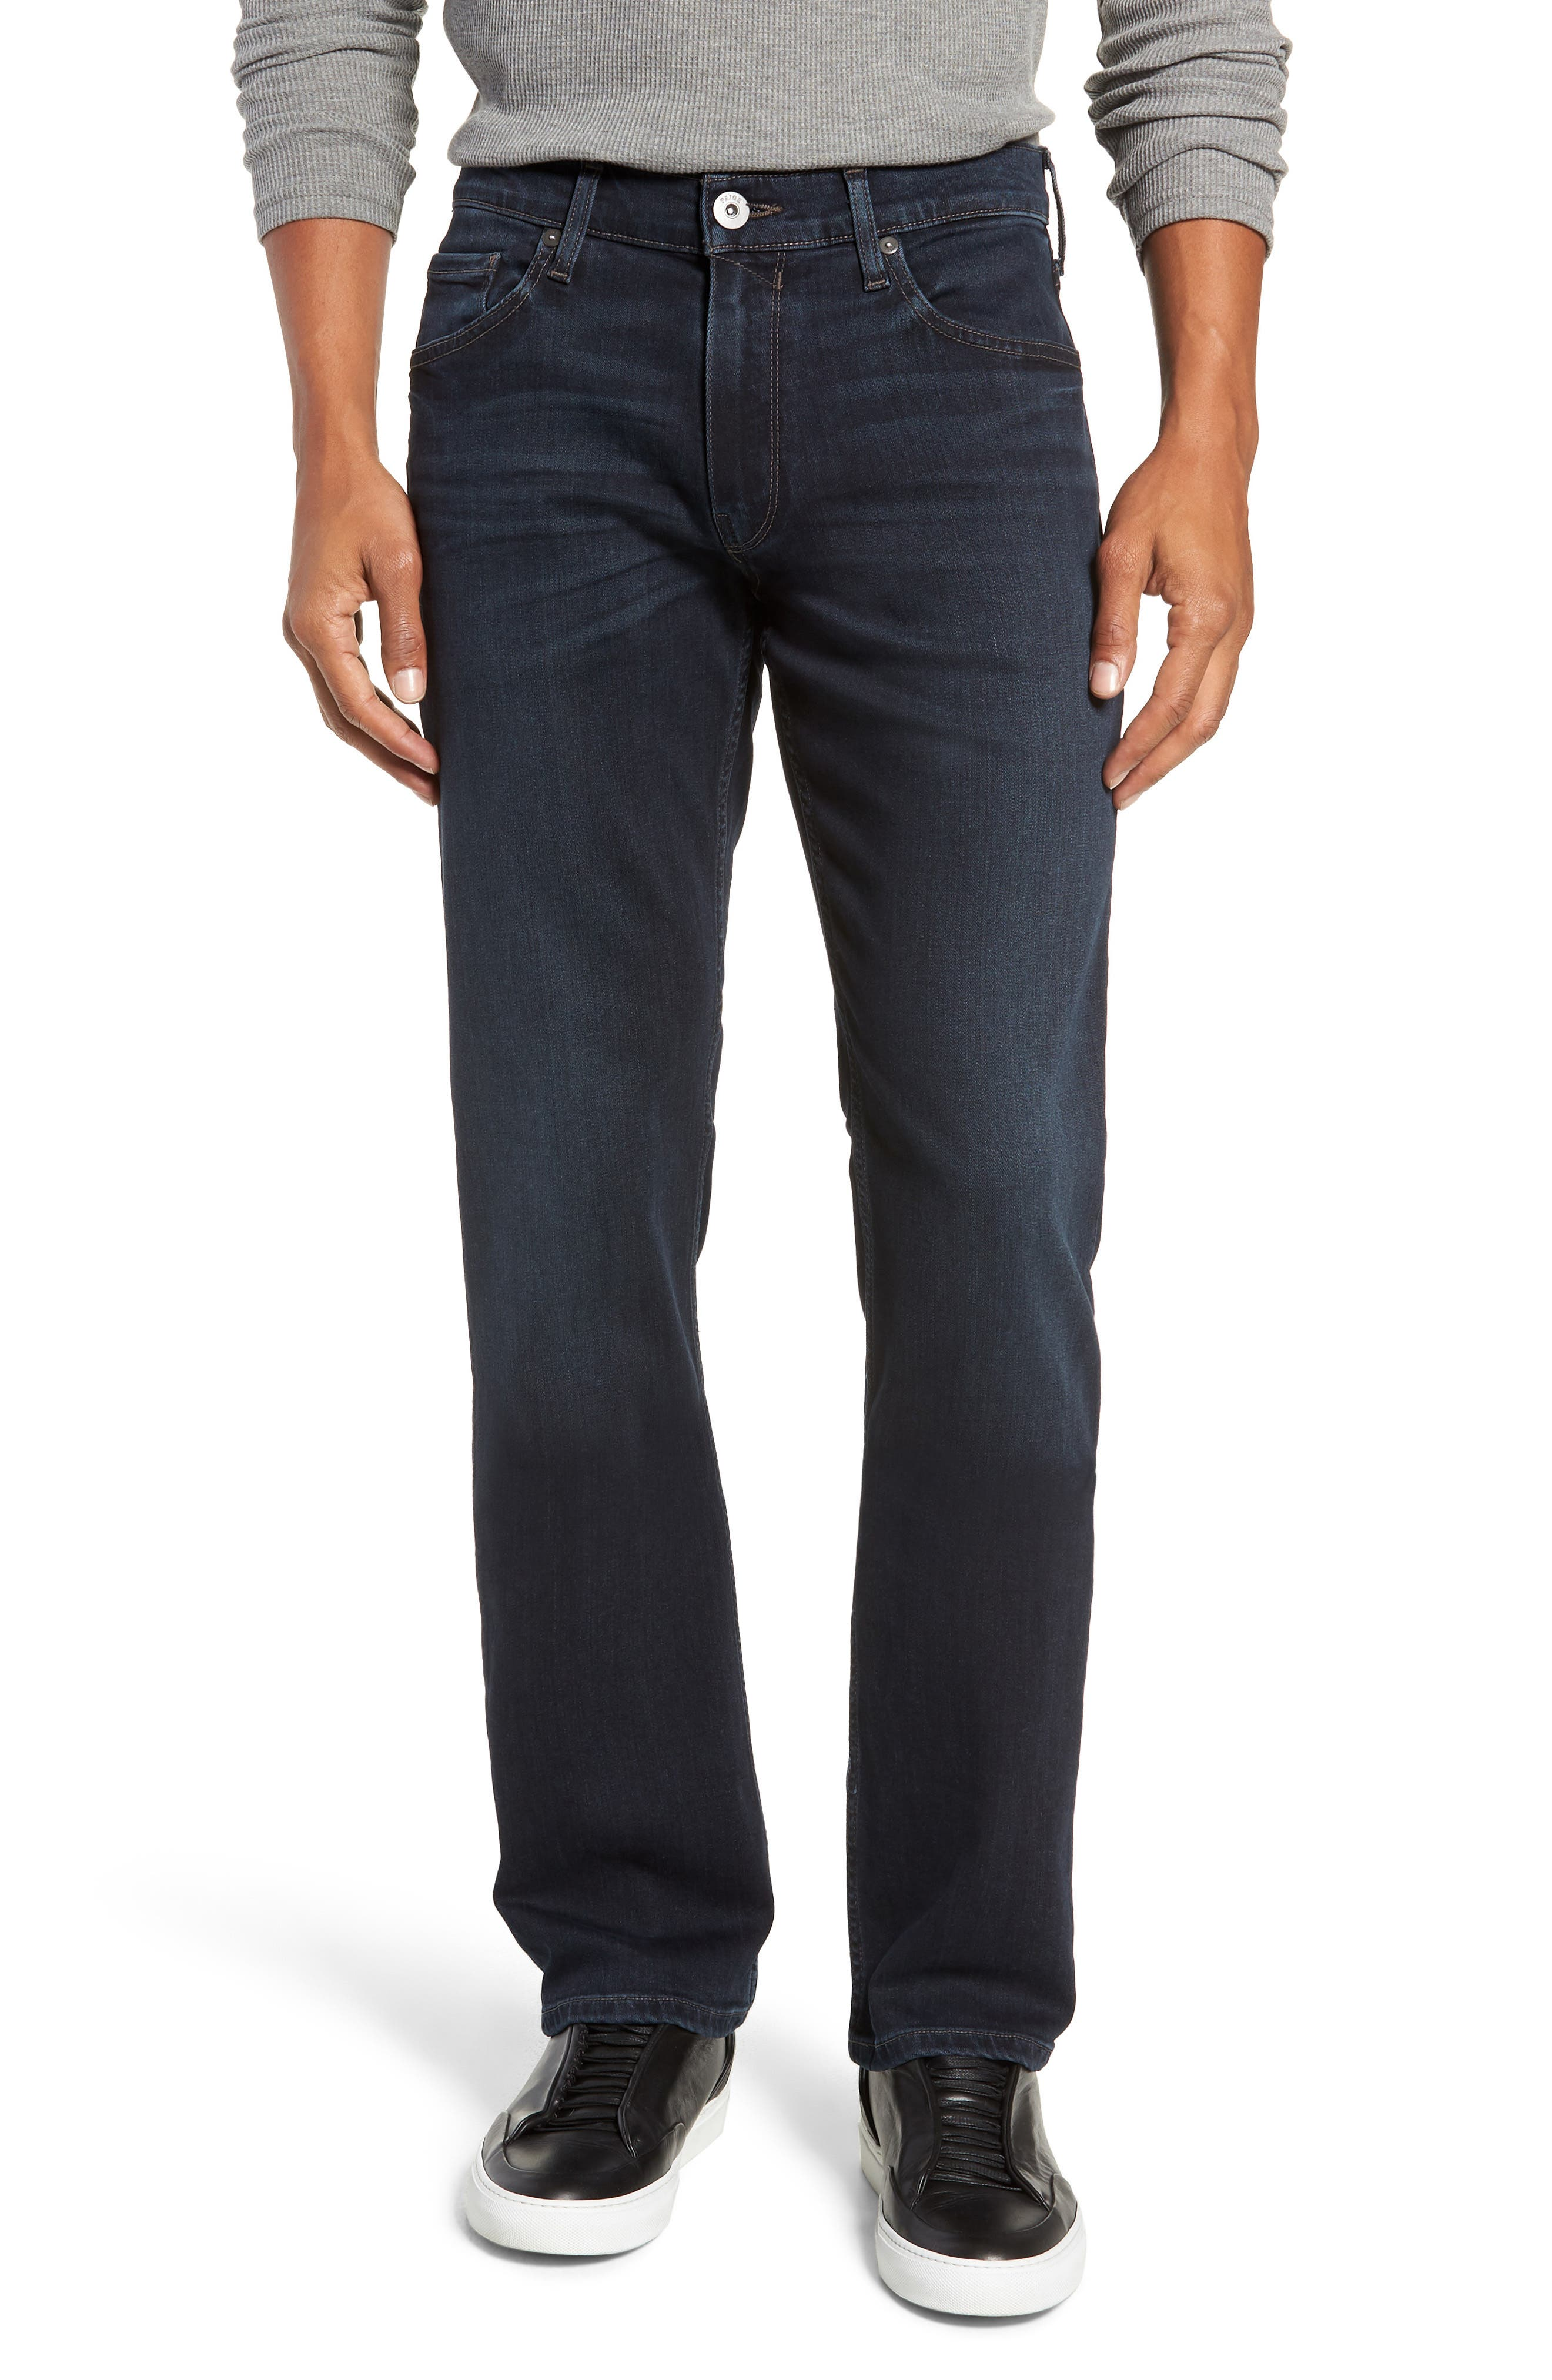 Transcend - Normandie Straight Leg Jeans,                         Main,                         color, LARK